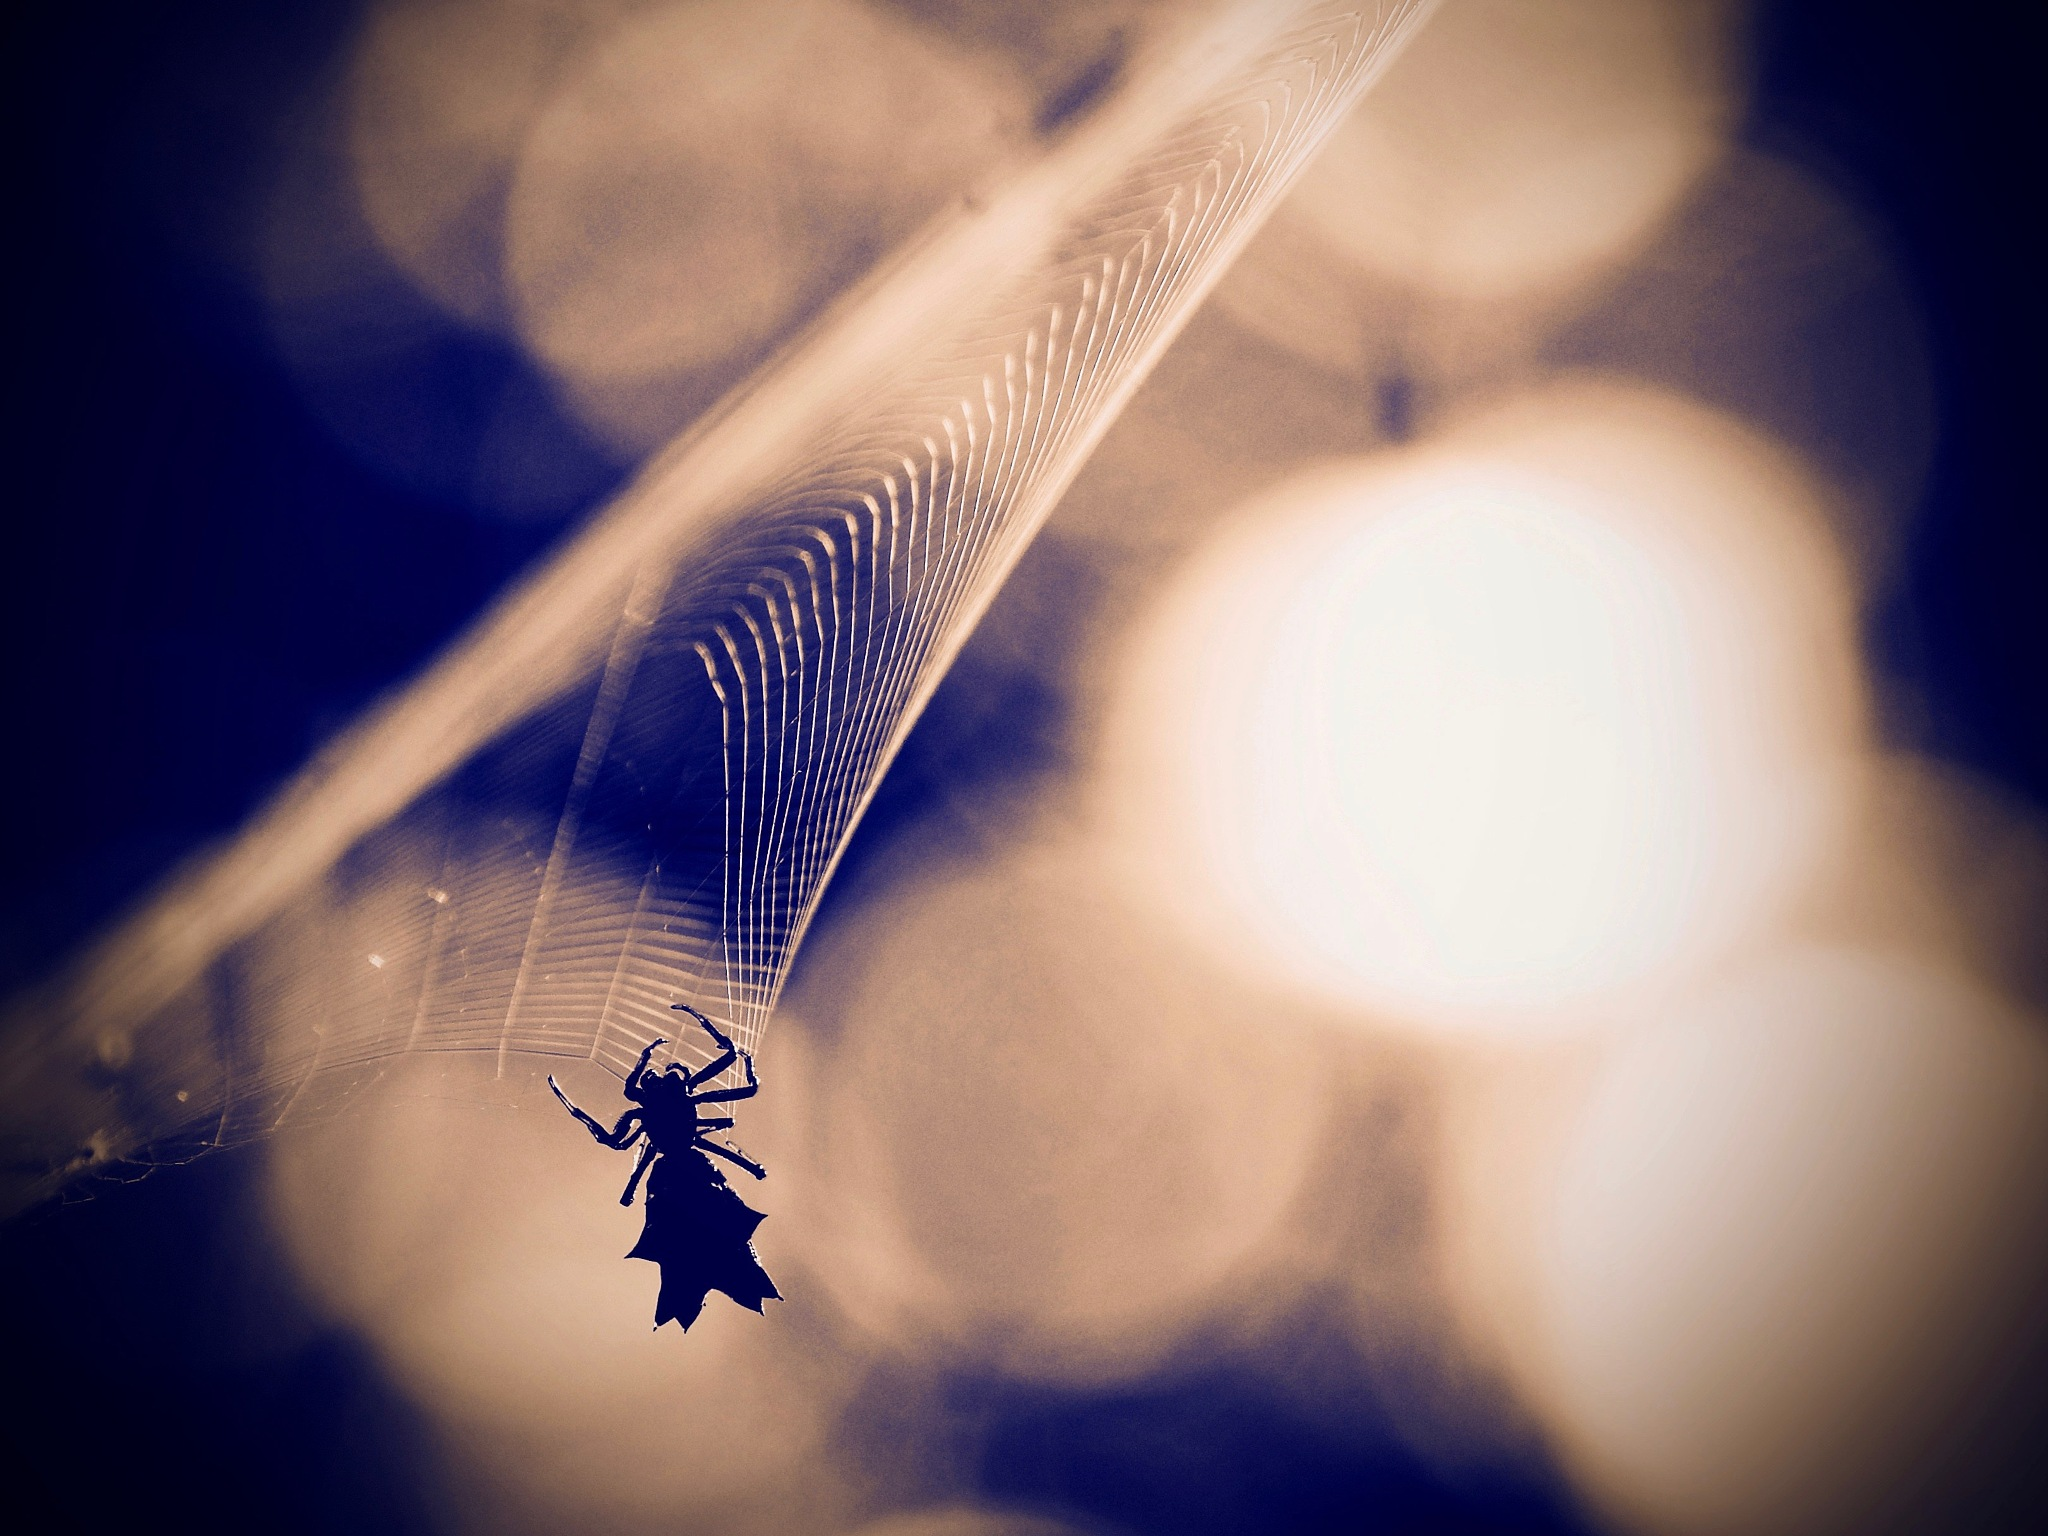 Web Spinning by Shawn456